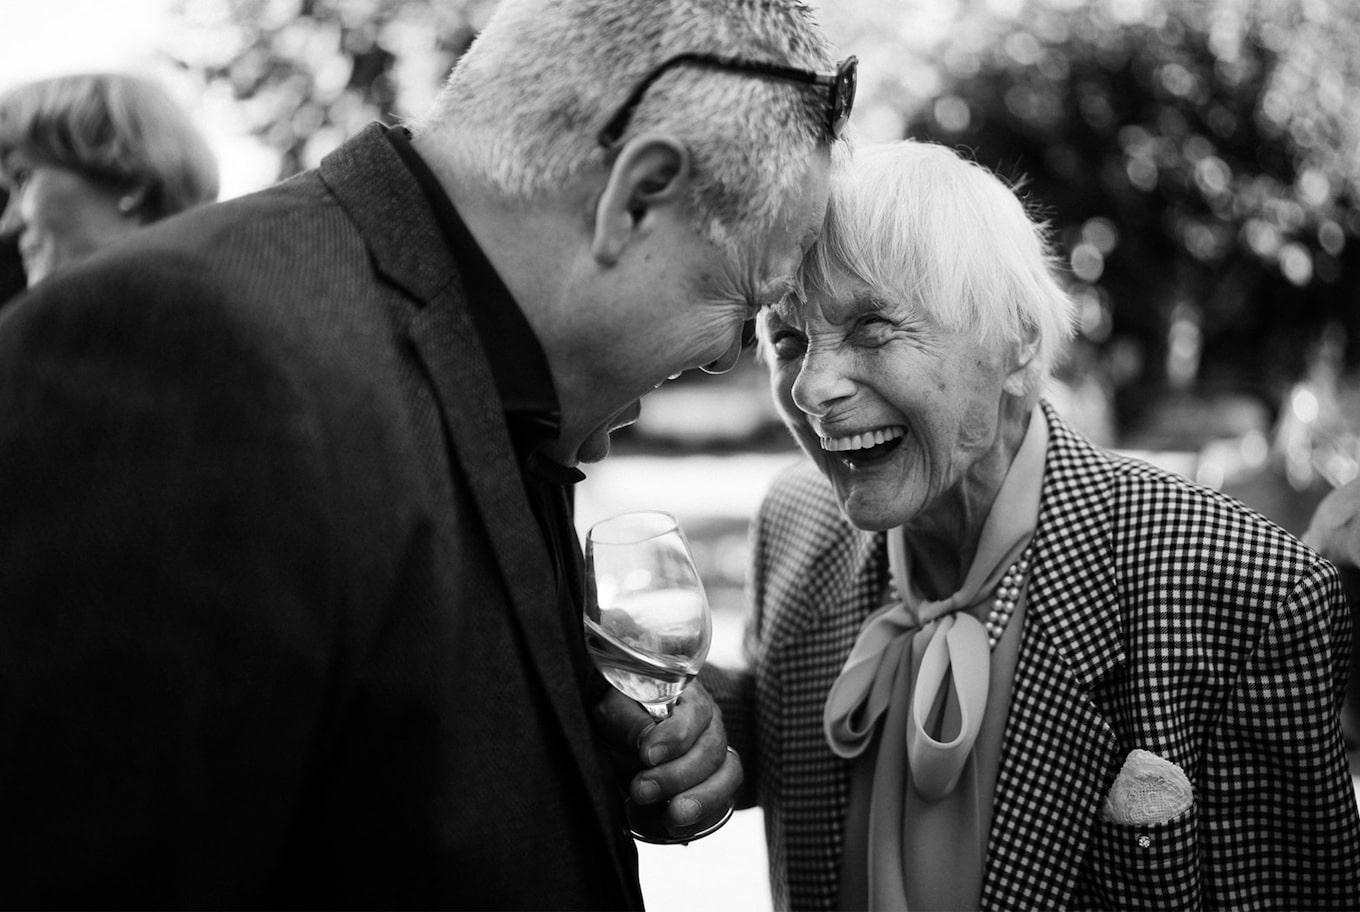 yannick zurfluh sony alpha 9 black and white guests laugh over a drink